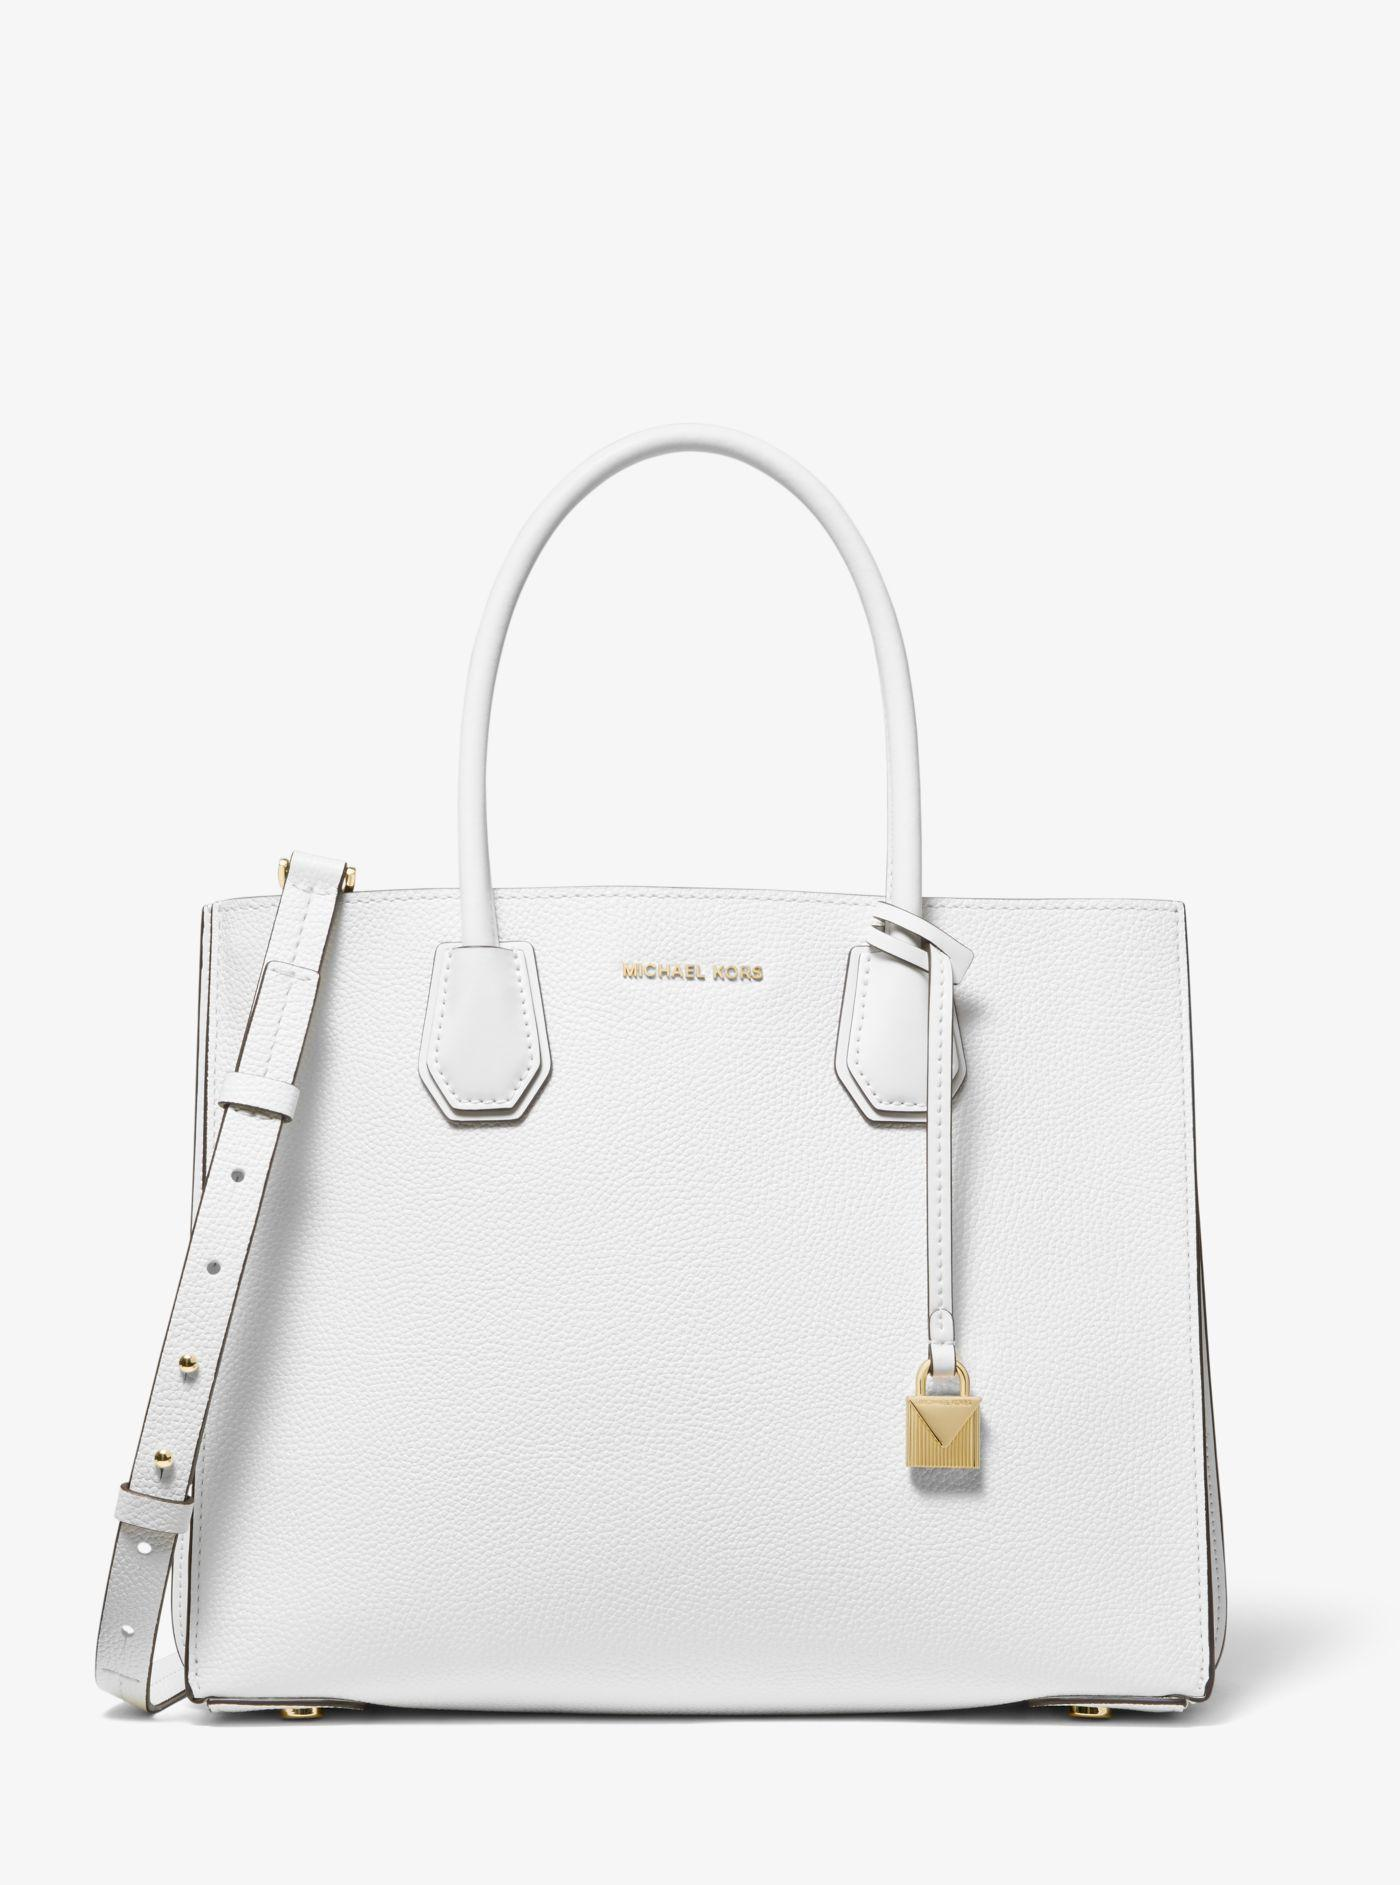 070f39f6af3a0 Michael Kors - White Mercer Large Pebbled Leather Accordion Tote - Lyst.  View fullscreen